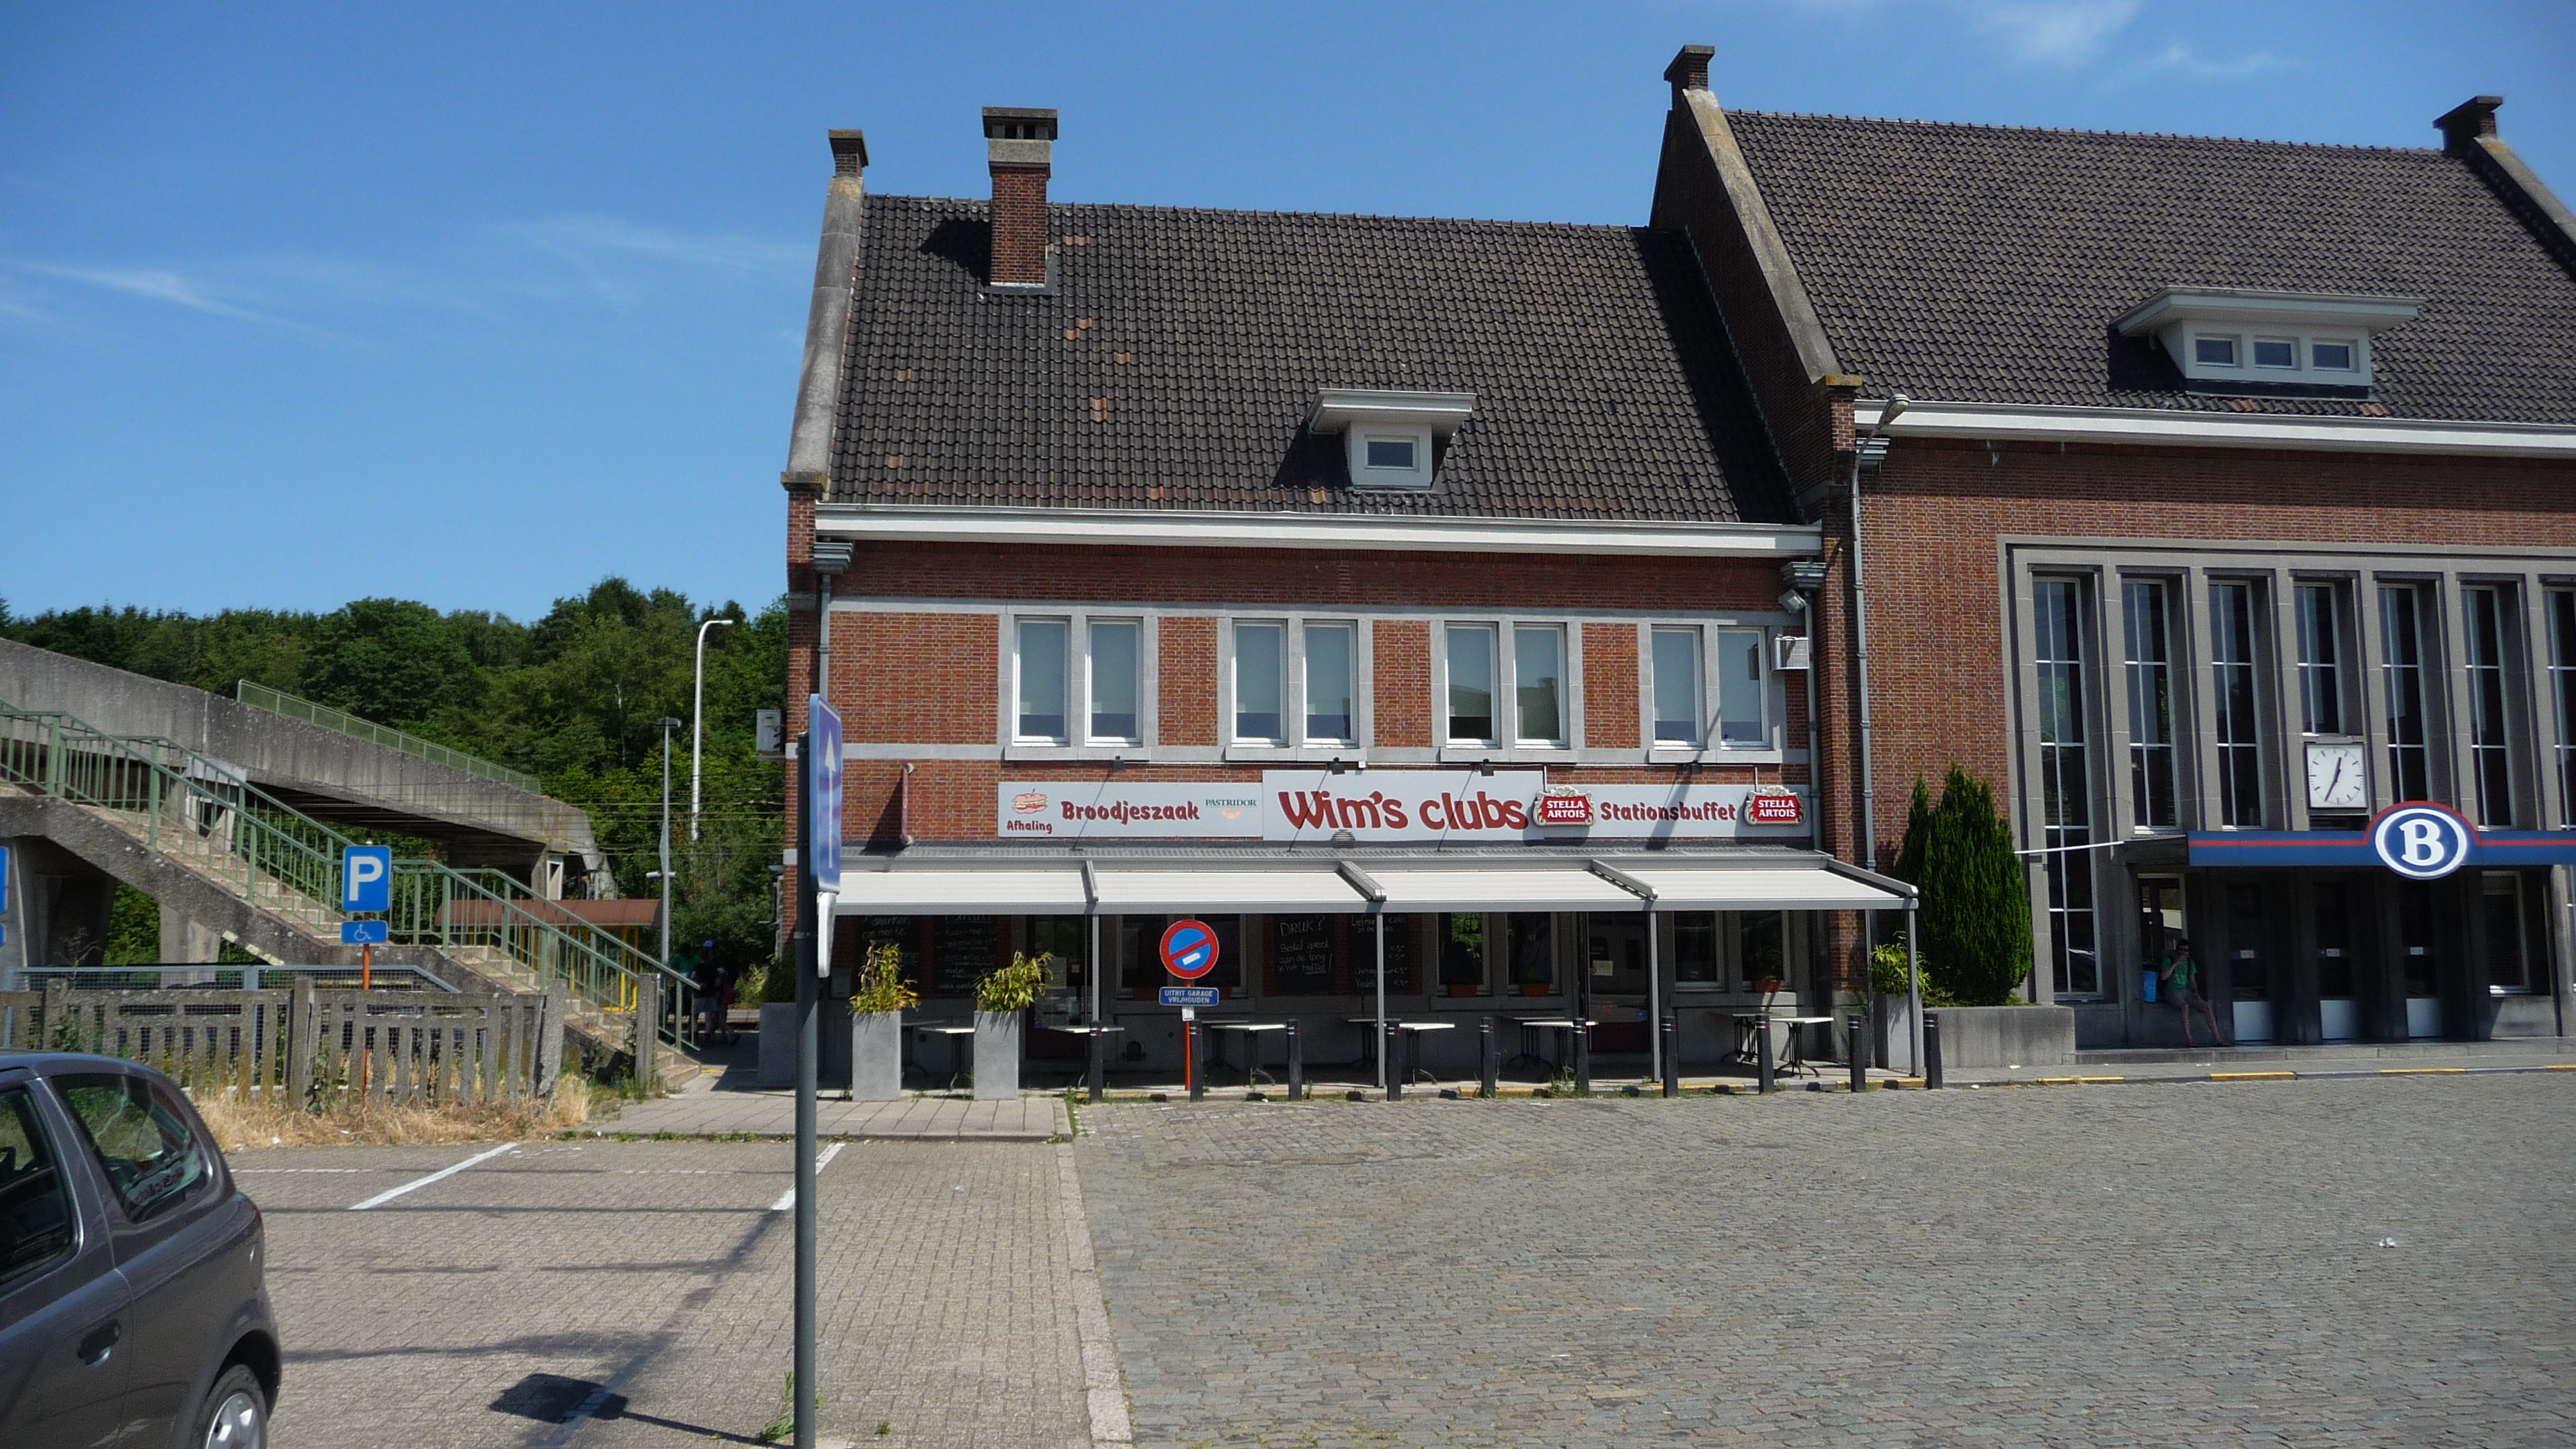 Diest railway station: the start of the hike